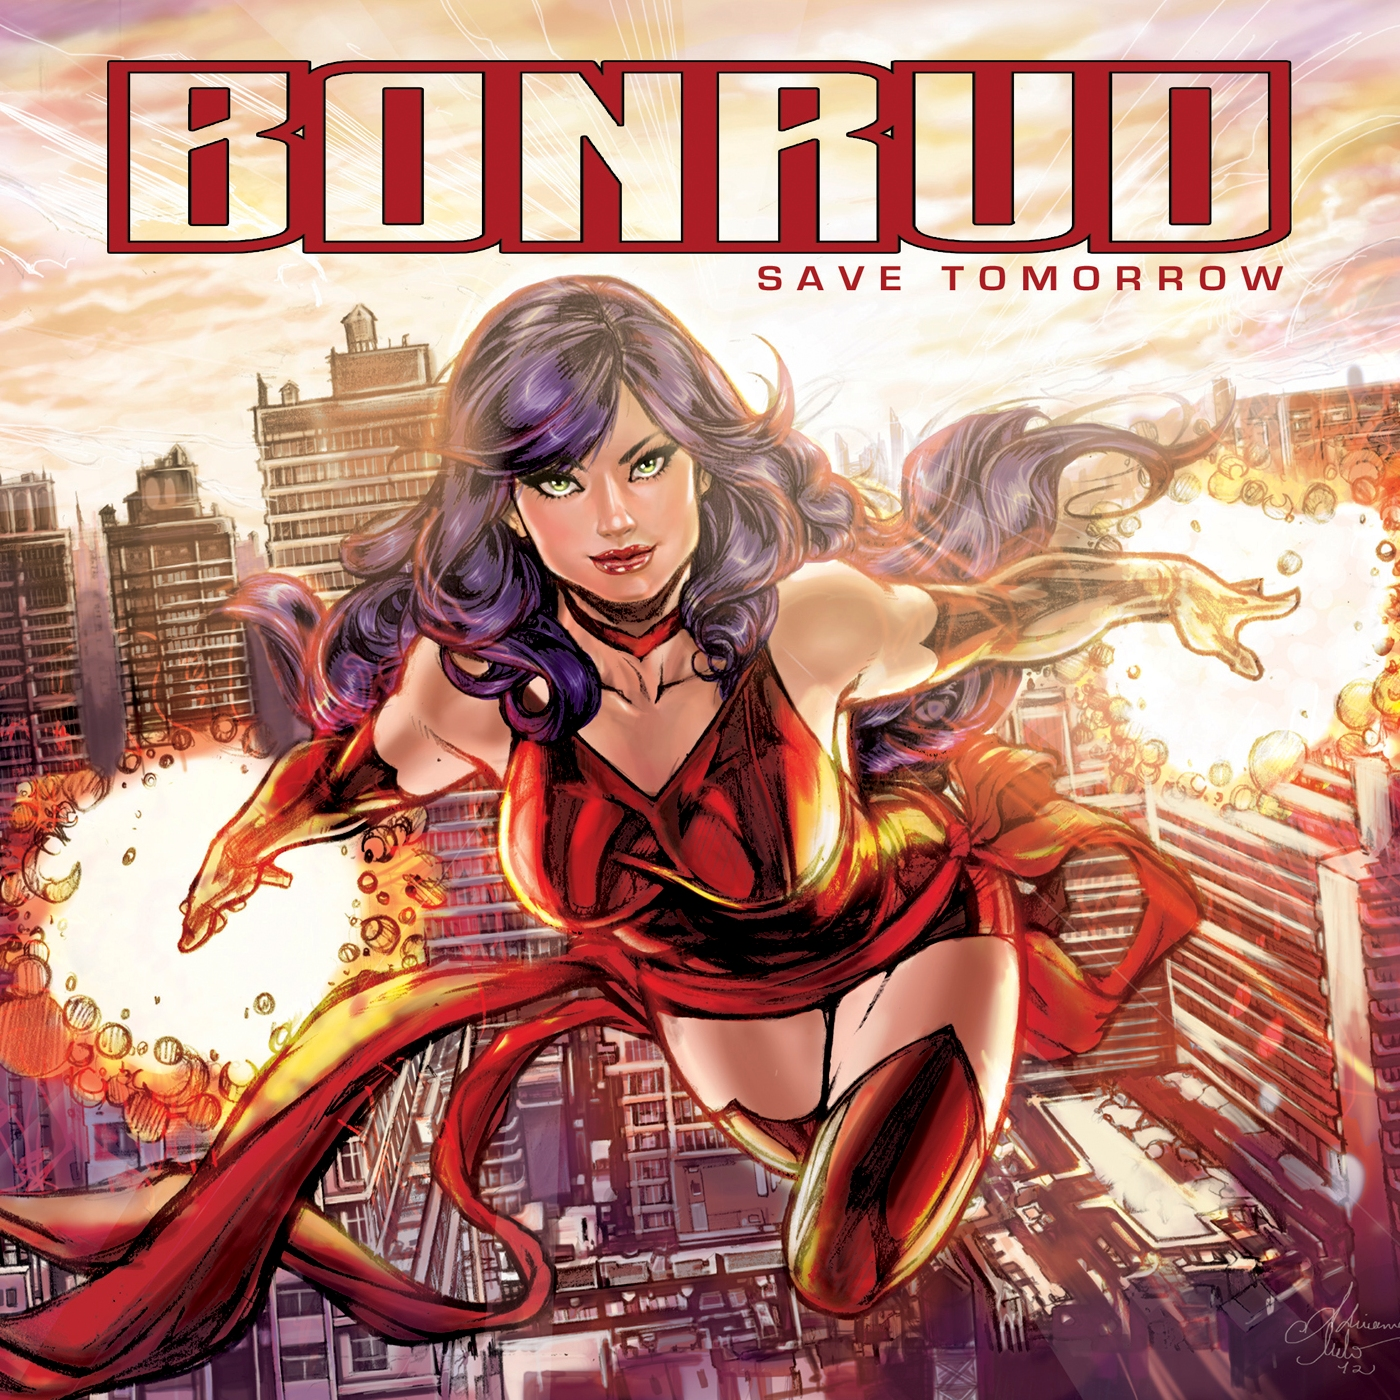 Save Tomorrow album artwork drawn by Marvel and DC Comics artist, Adriana Melo!